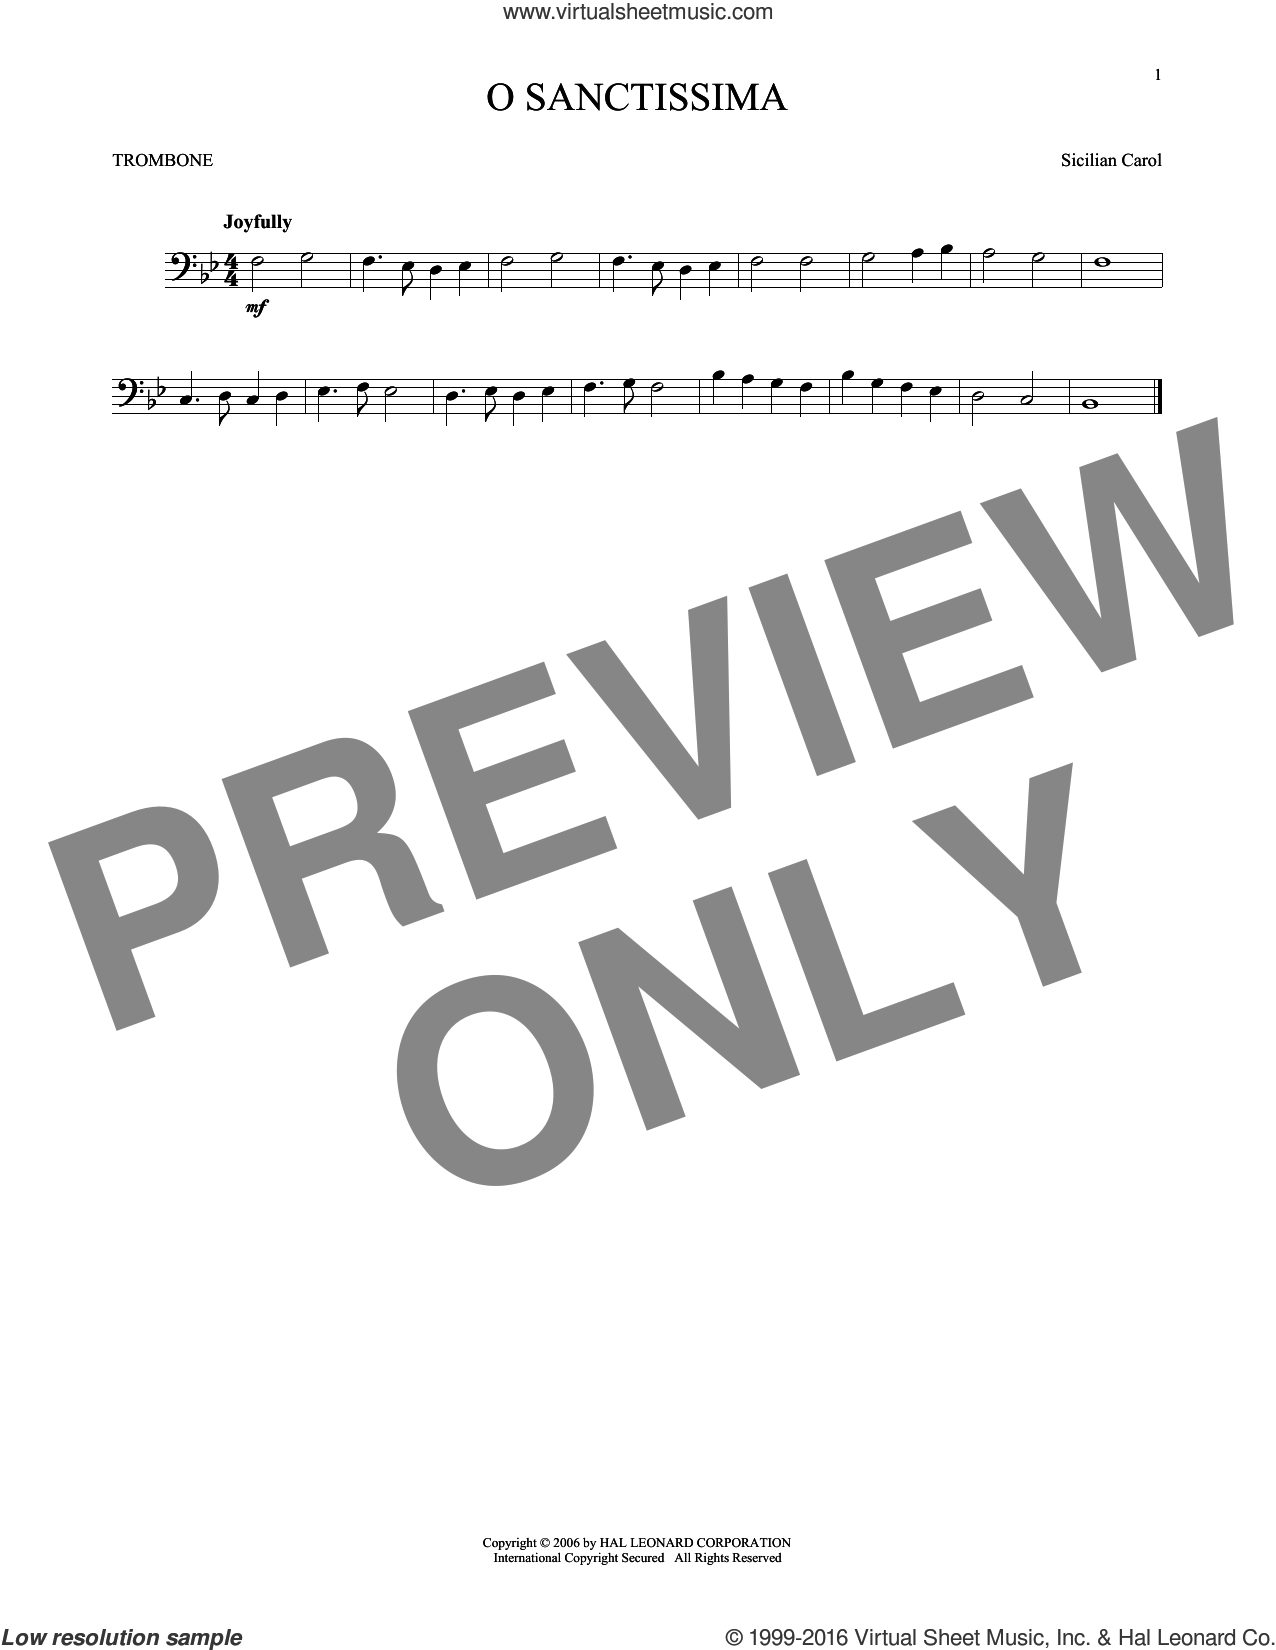 O Sanctissima sheet music for trombone solo. Score Image Preview.